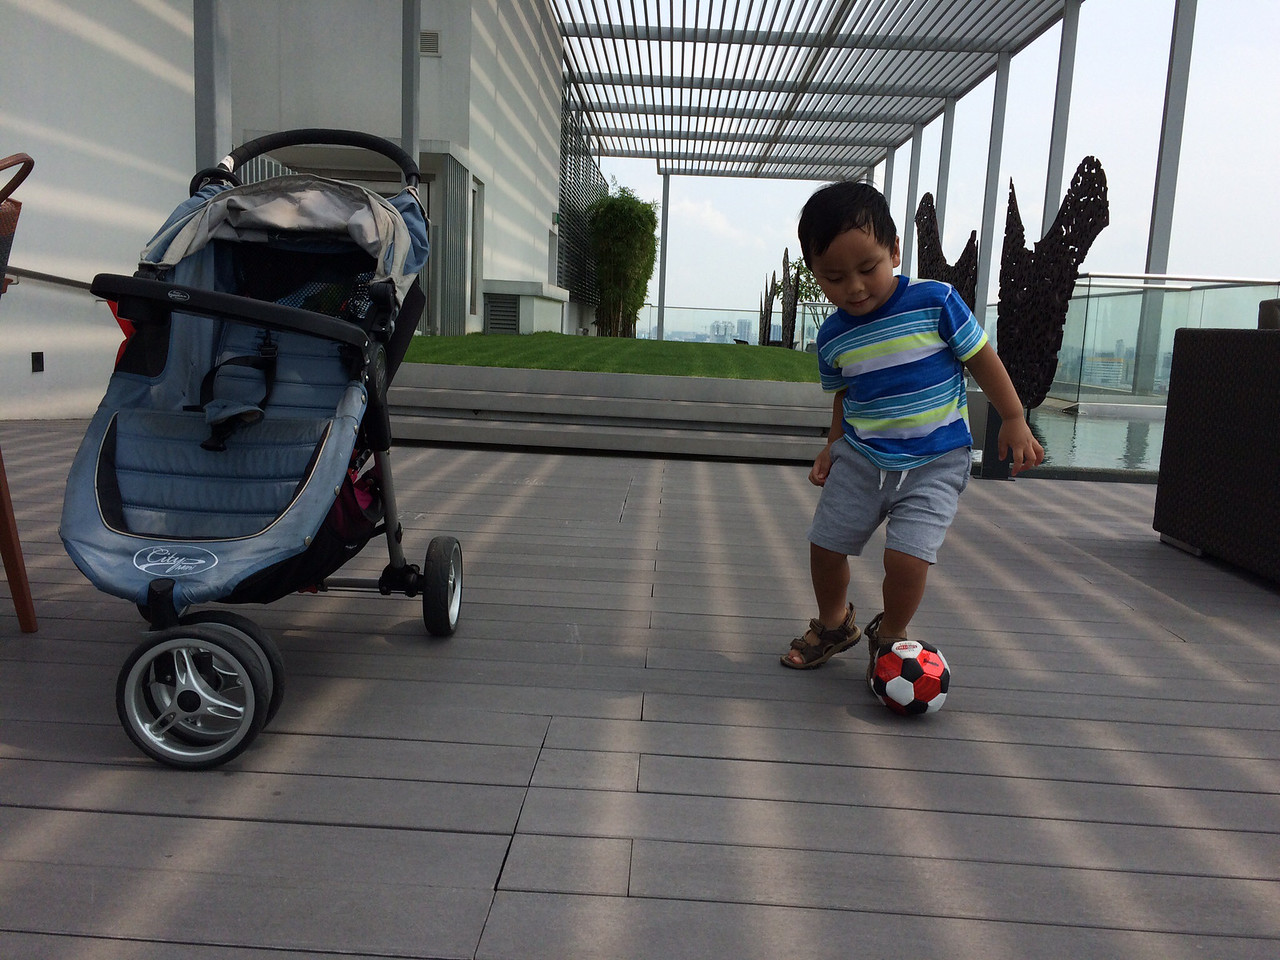 He's pretty good at handling a soccer ball, not even 3...